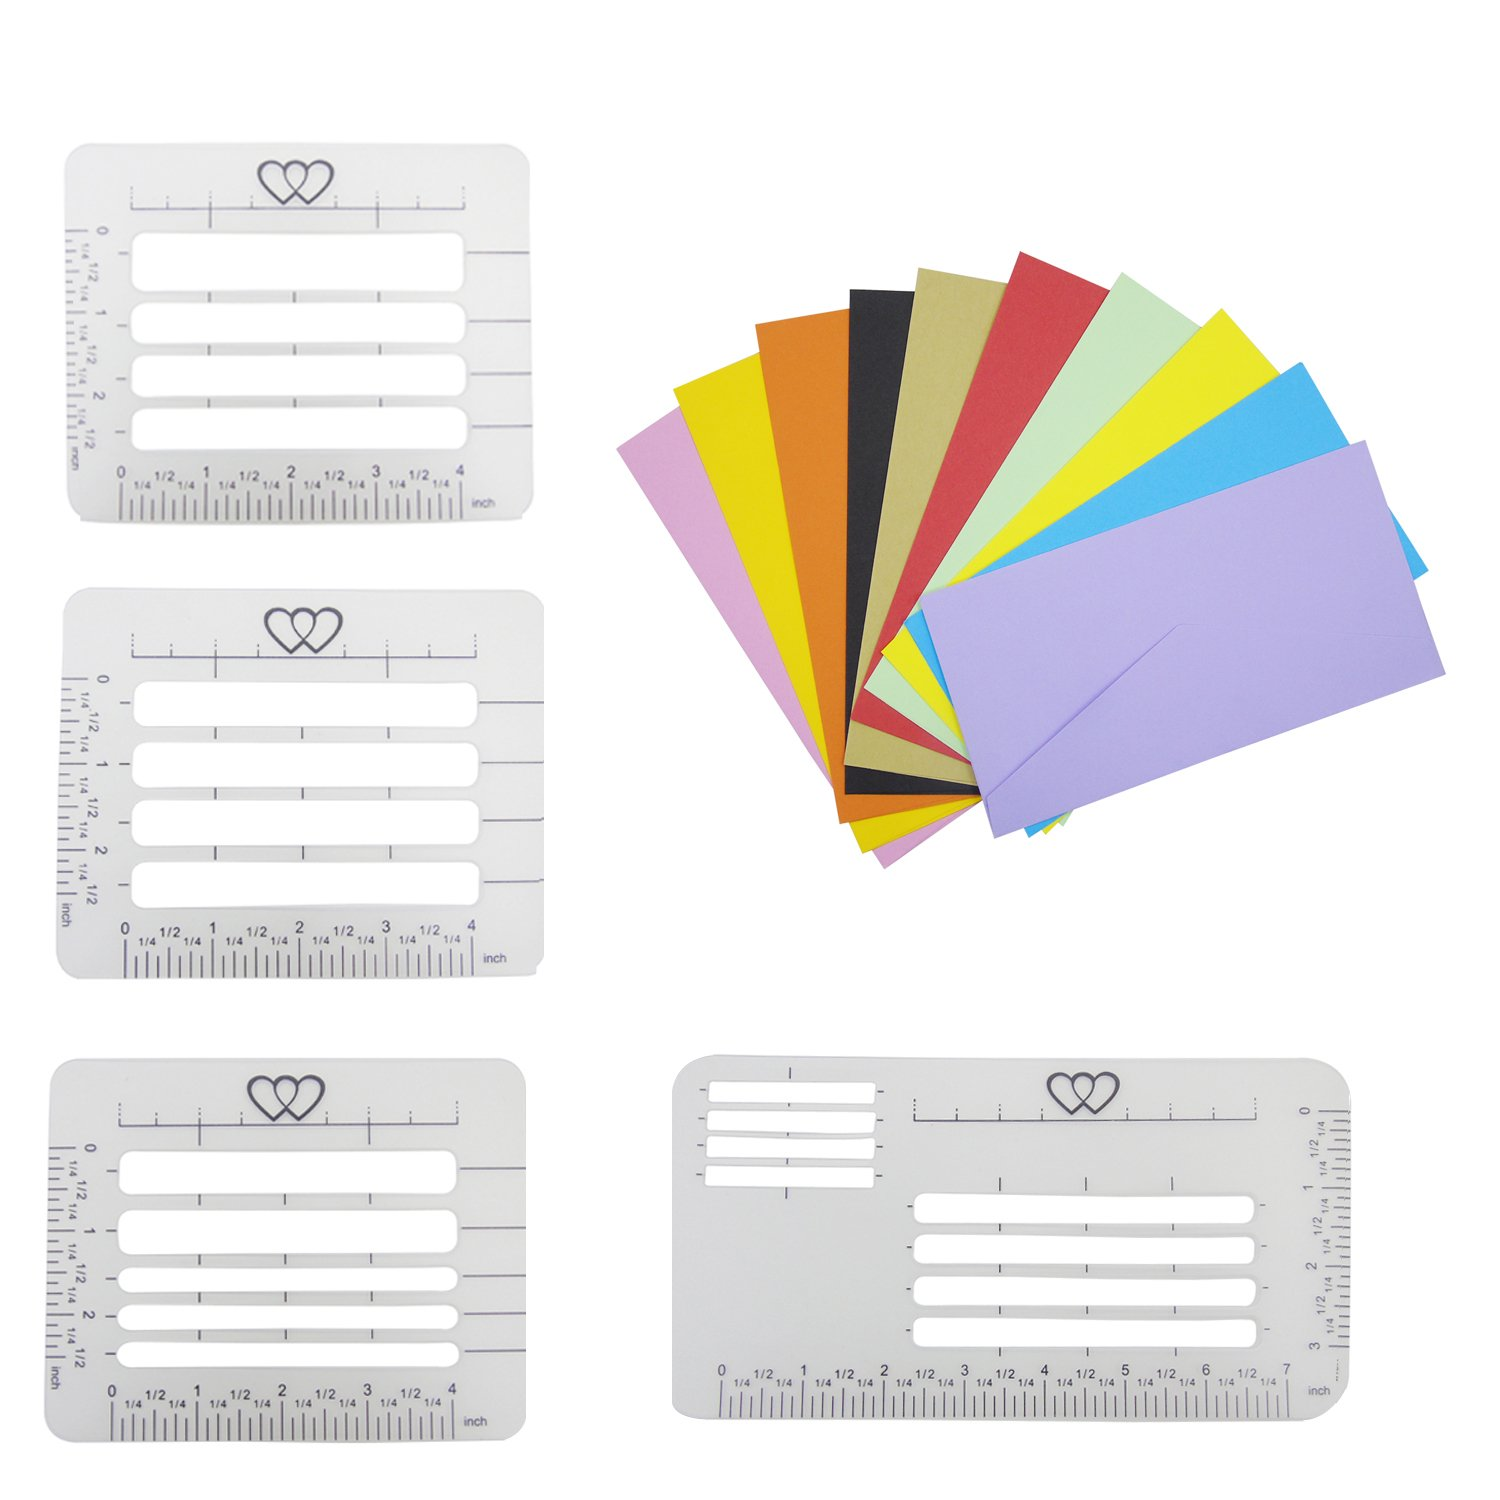 Letter Addressing Stencil.4pcs Envelope Addressing Stencil With 10pcs Dl Small Colored Envelopes 8 6 X 4 3 Inch Granmp 4 Style Letter Addressing Guide Template Stencil With